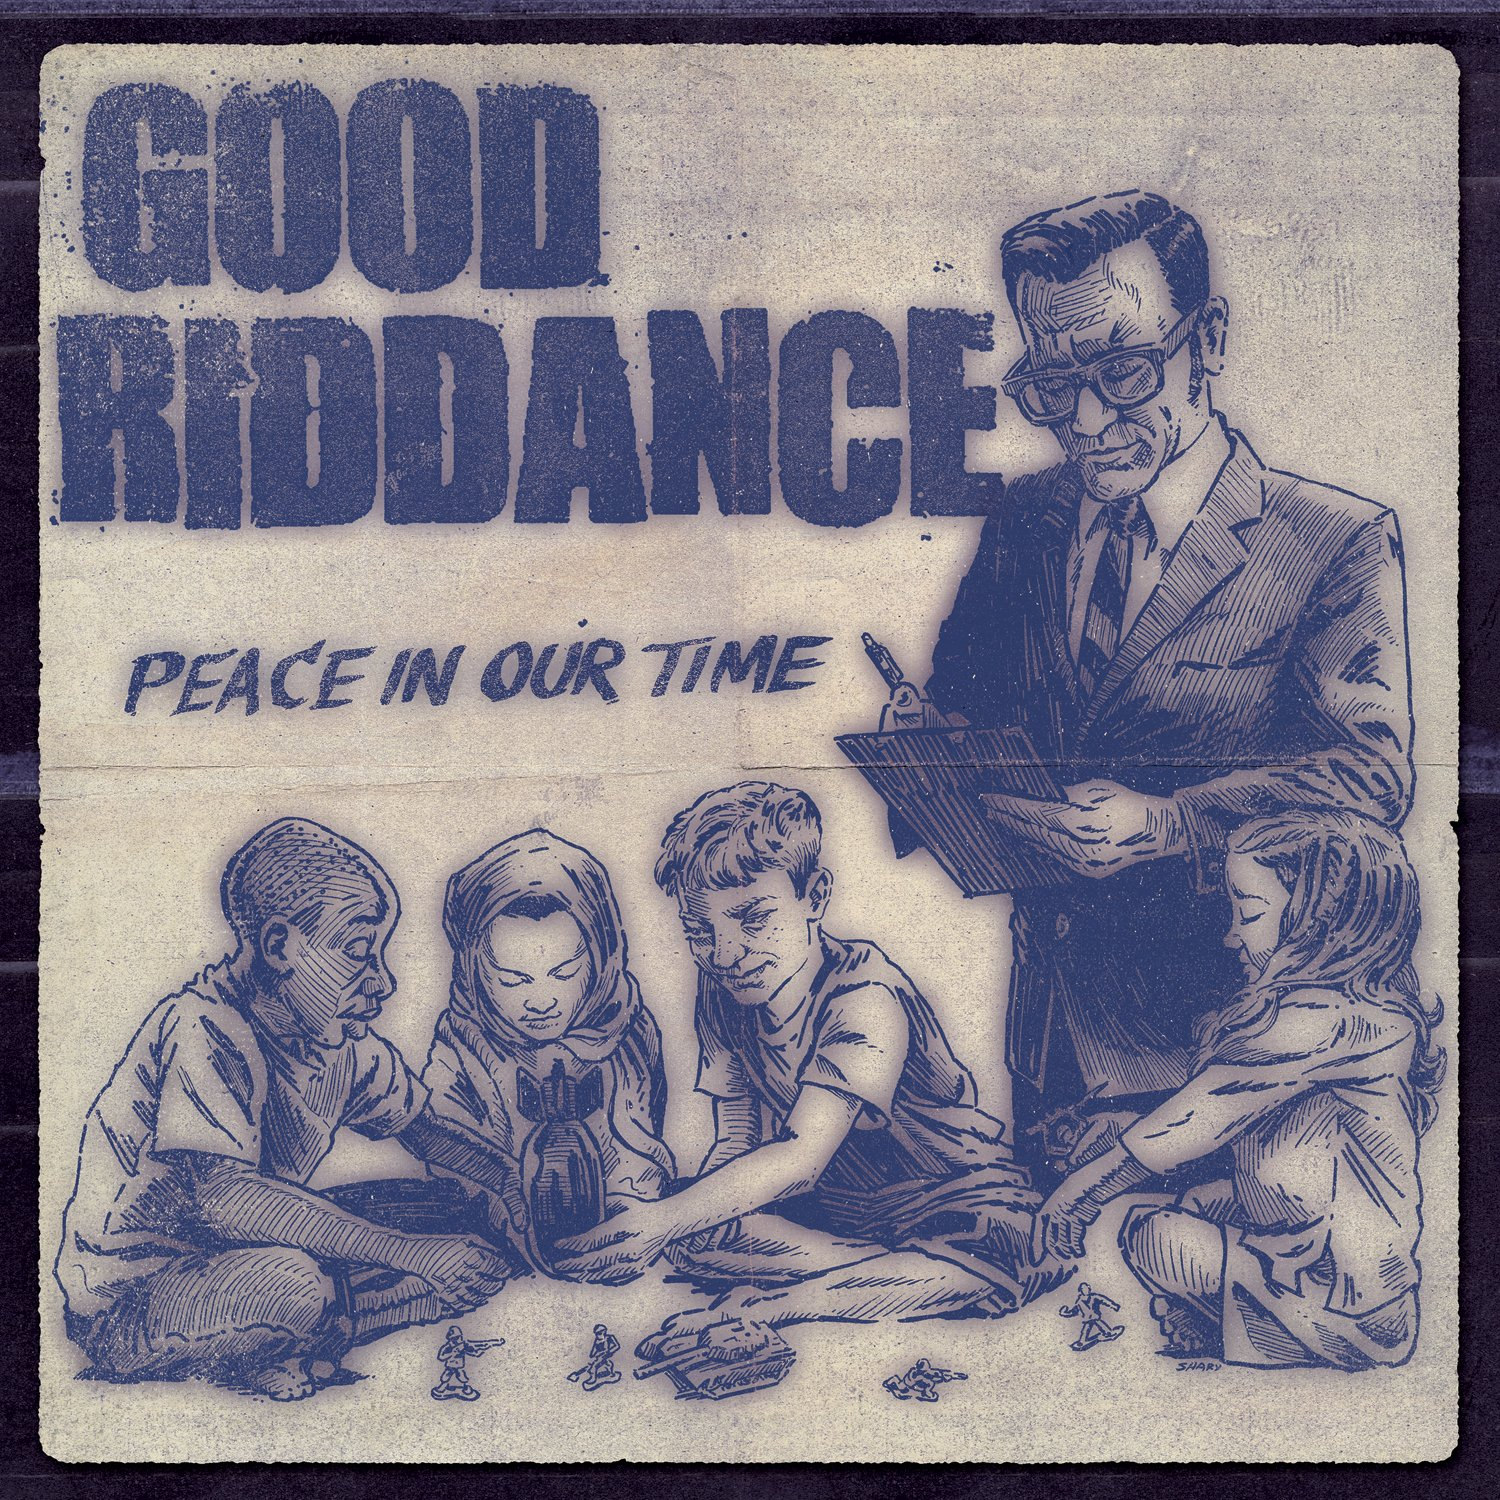 CD : Good Riddance - Peace In Our Time (CD)